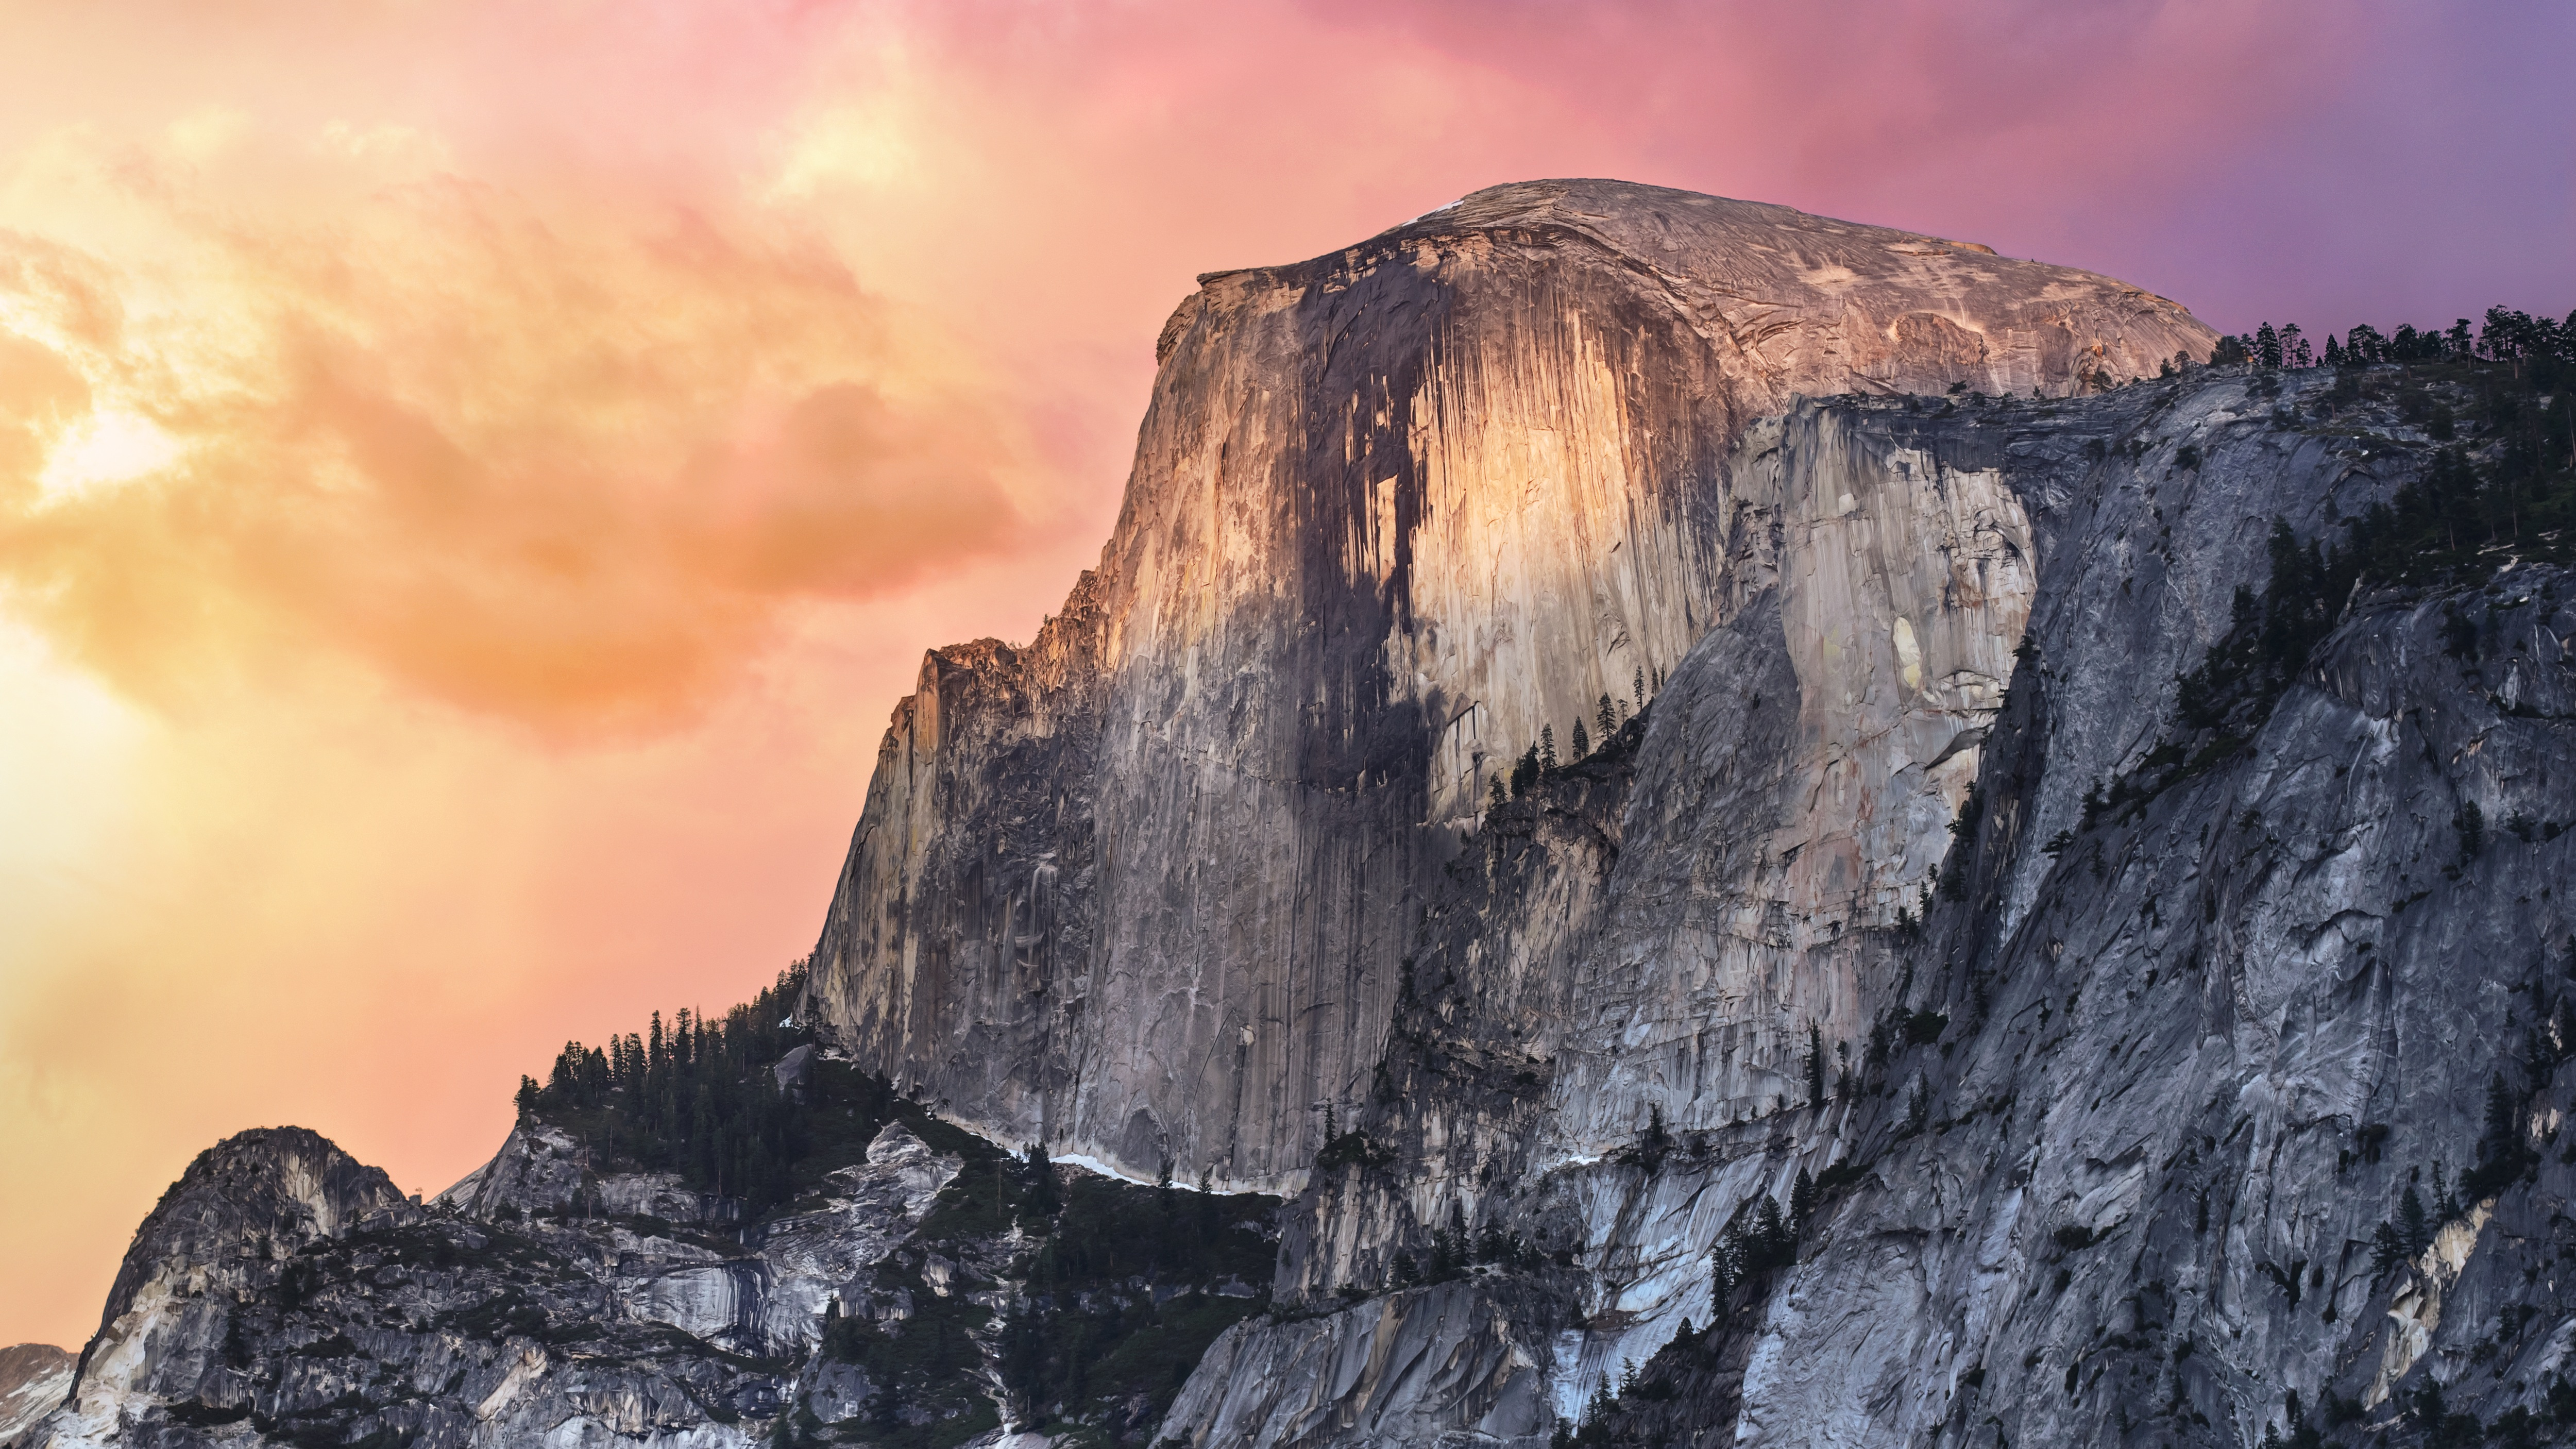 Wallpapers For Pc Mac: Download OS X Yosemite Wallpapers